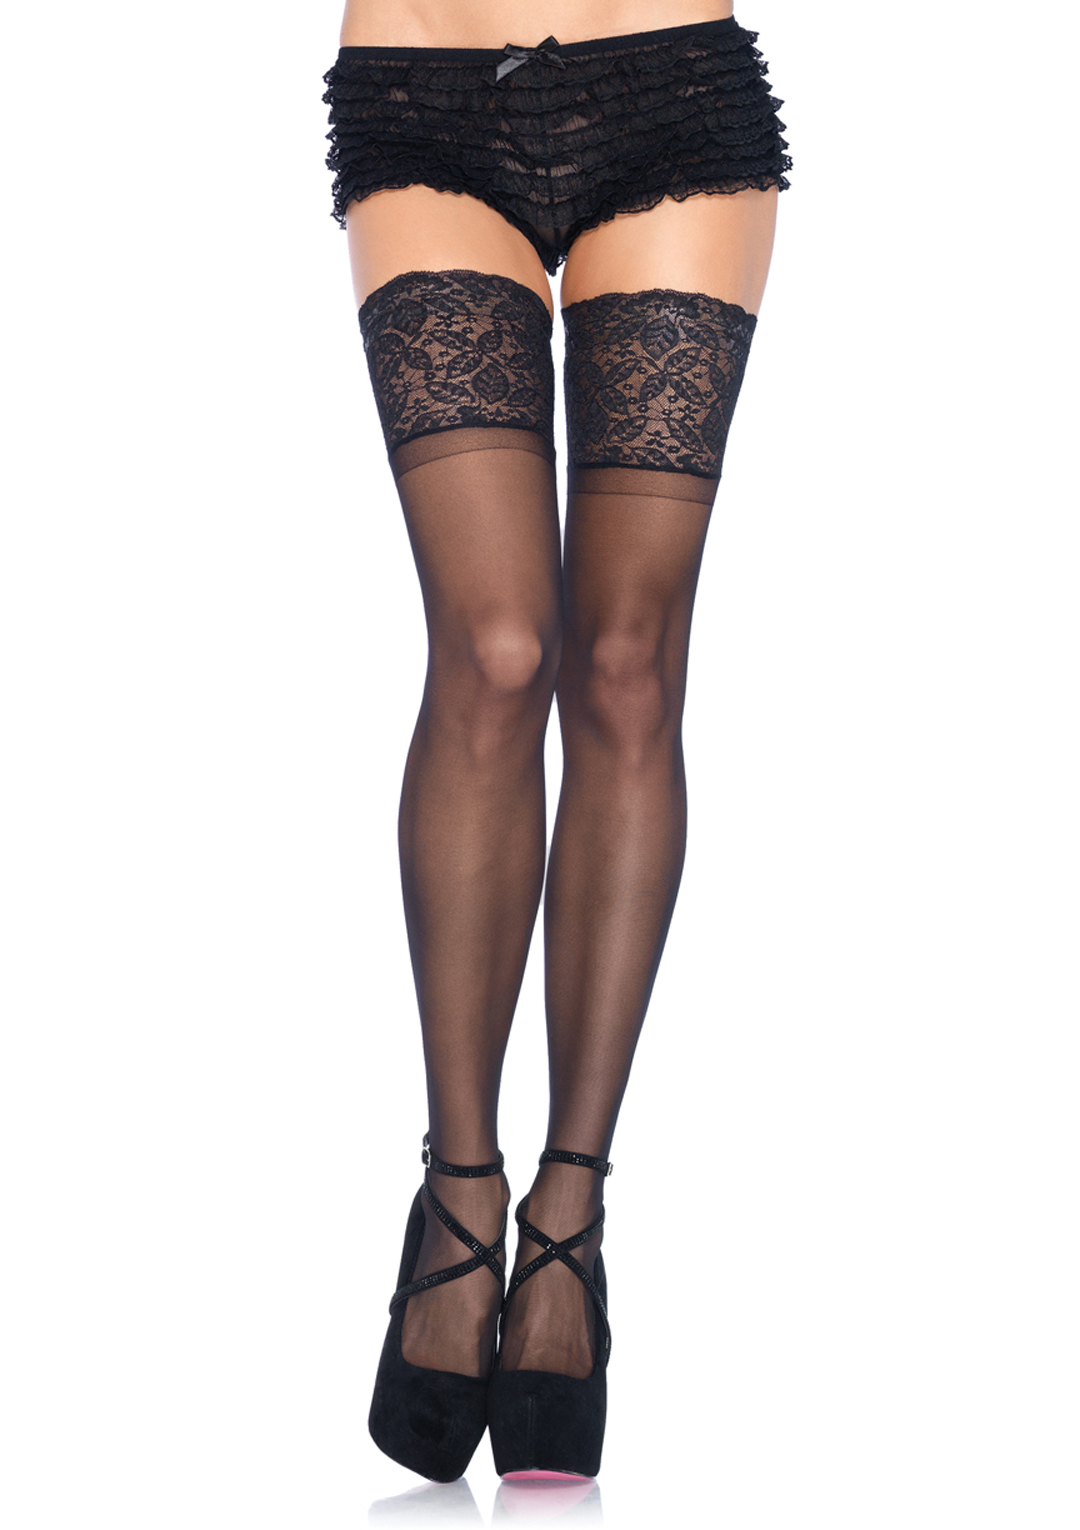 Spandex Sheer Thigh Highs with 5 Inch Silicone Stay UP Lace Top - MORE COLORS